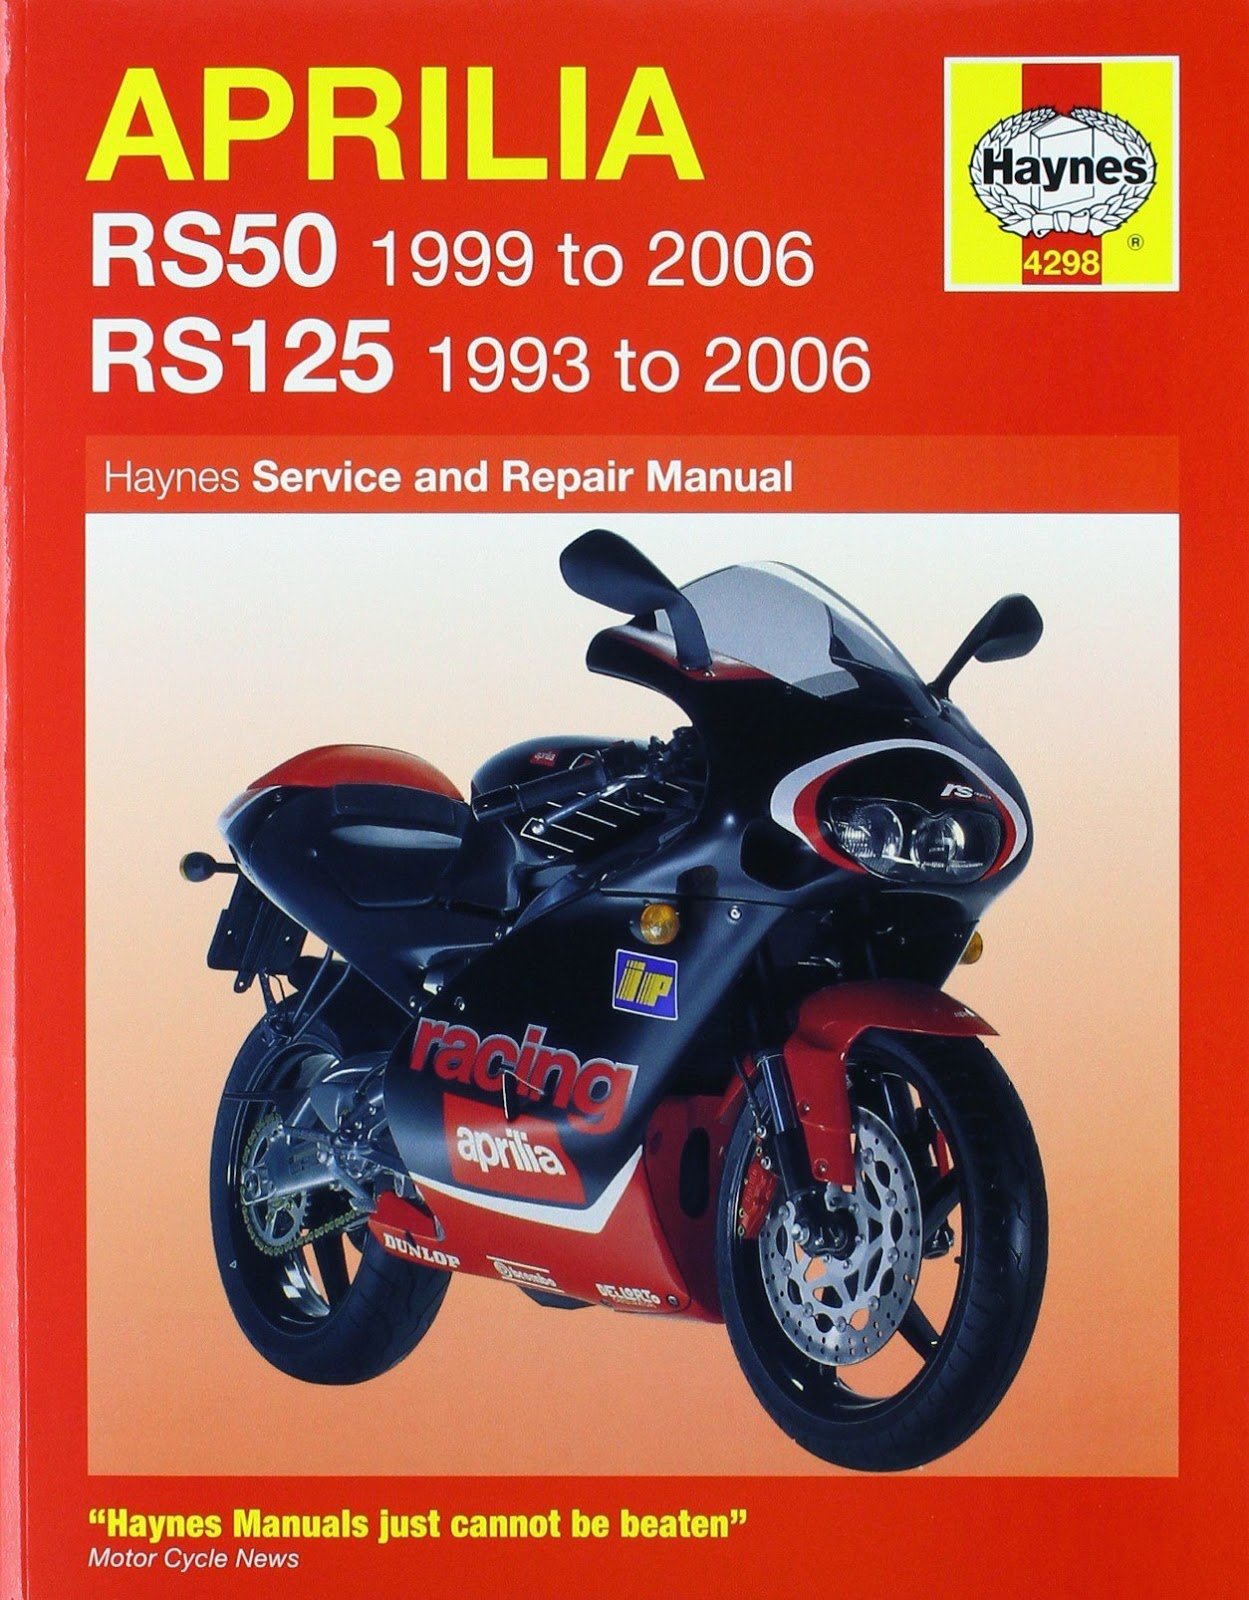 8121Qtv1oHL aprilia rs 125 aprilia rs 125 wiring diagrams electrics rs125 aprilia rs 125 wiring diagram 2006 at virtualis.co